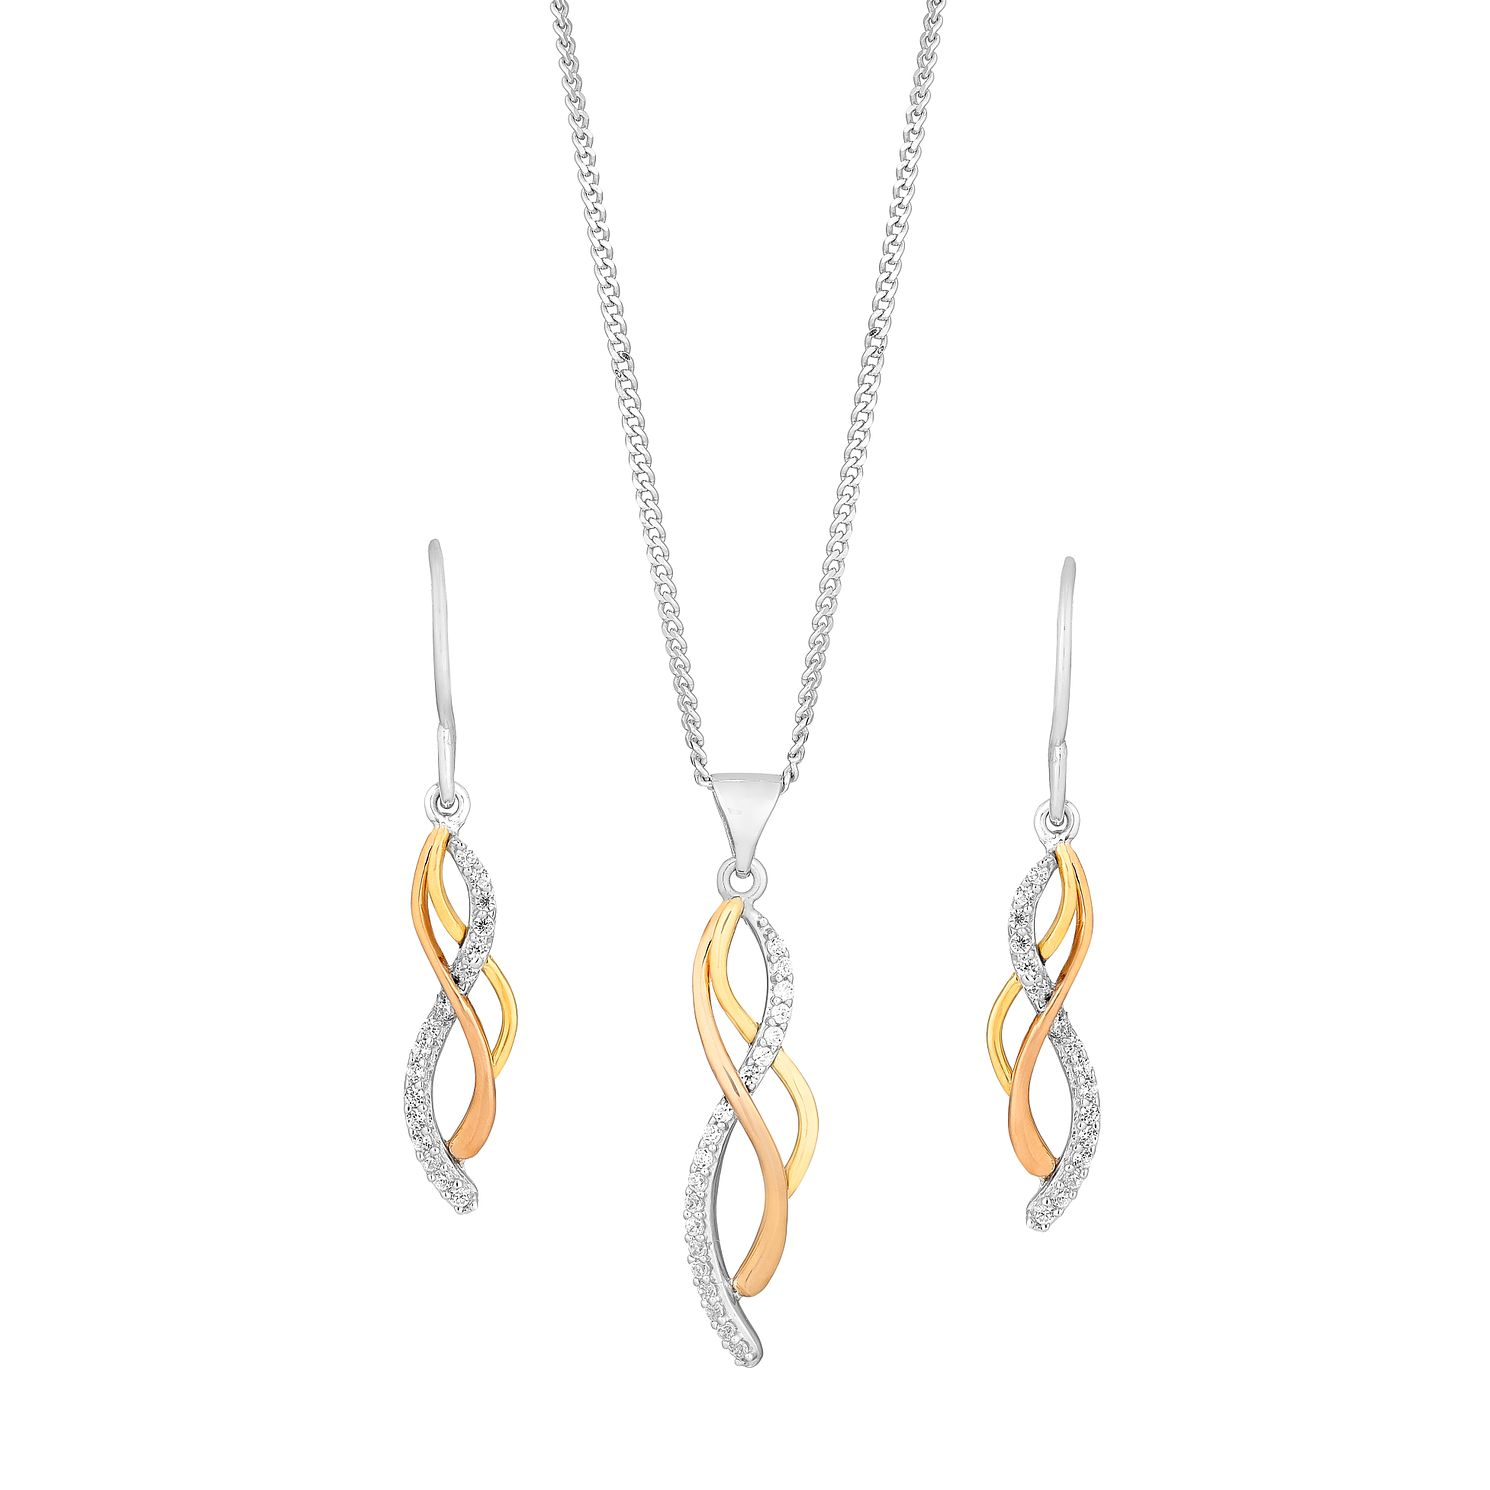 Silver & Gold Cubic Zirconia Twist Earring & Pendant Set - Product number 2648768